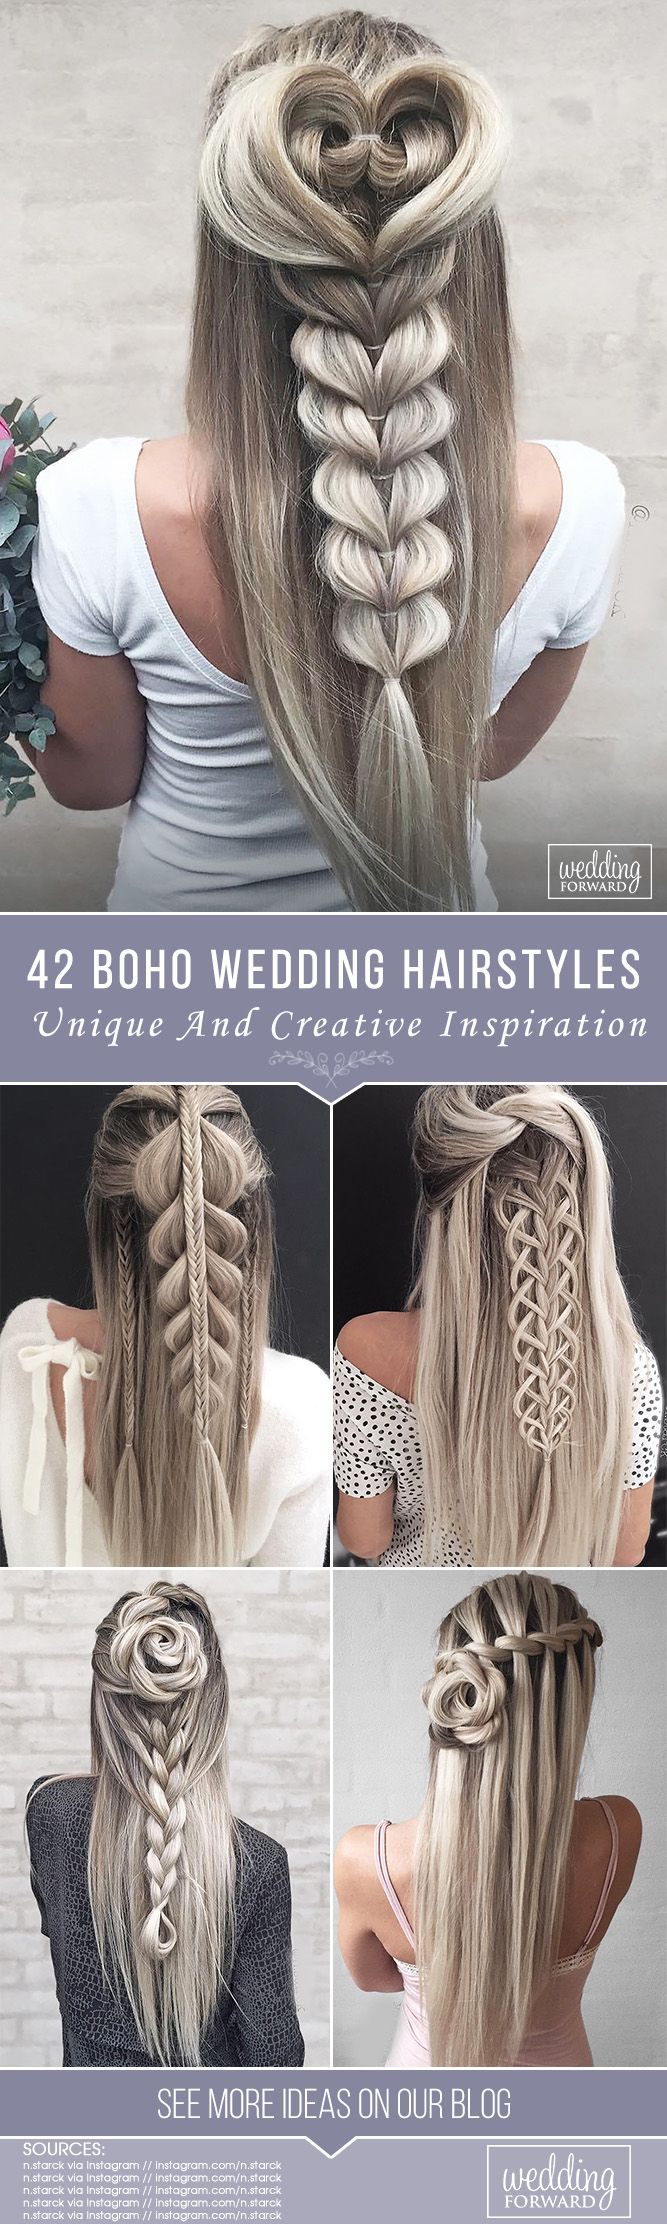 42 Boho Inspired Unique And Creative Wedding Hairstyles ❤ From creative hairst...